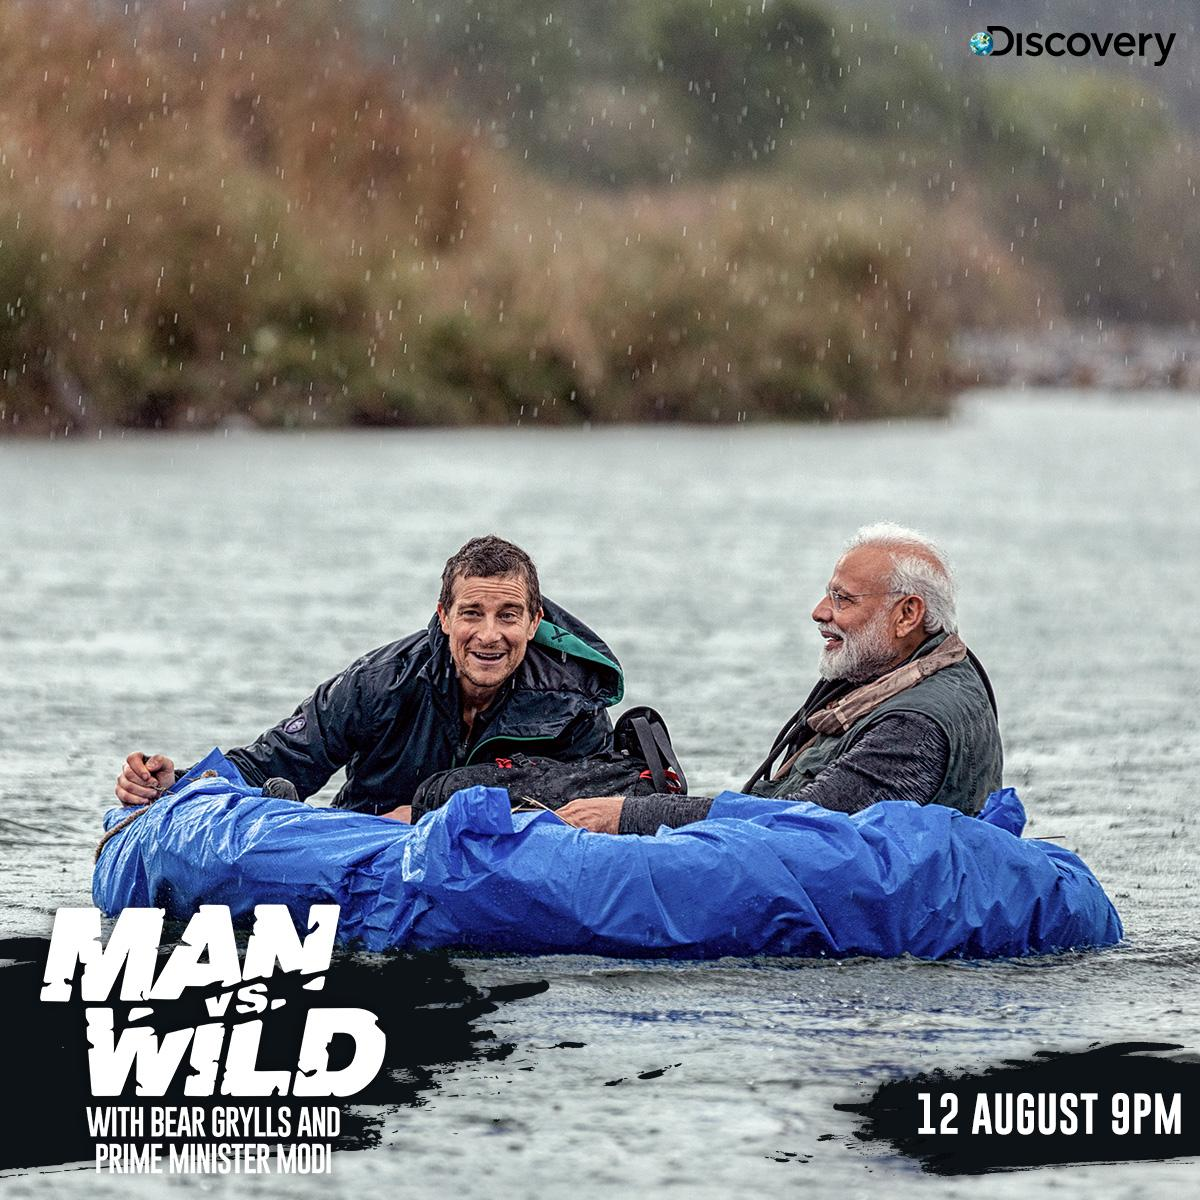 Discovery Channel IN on Twitter: